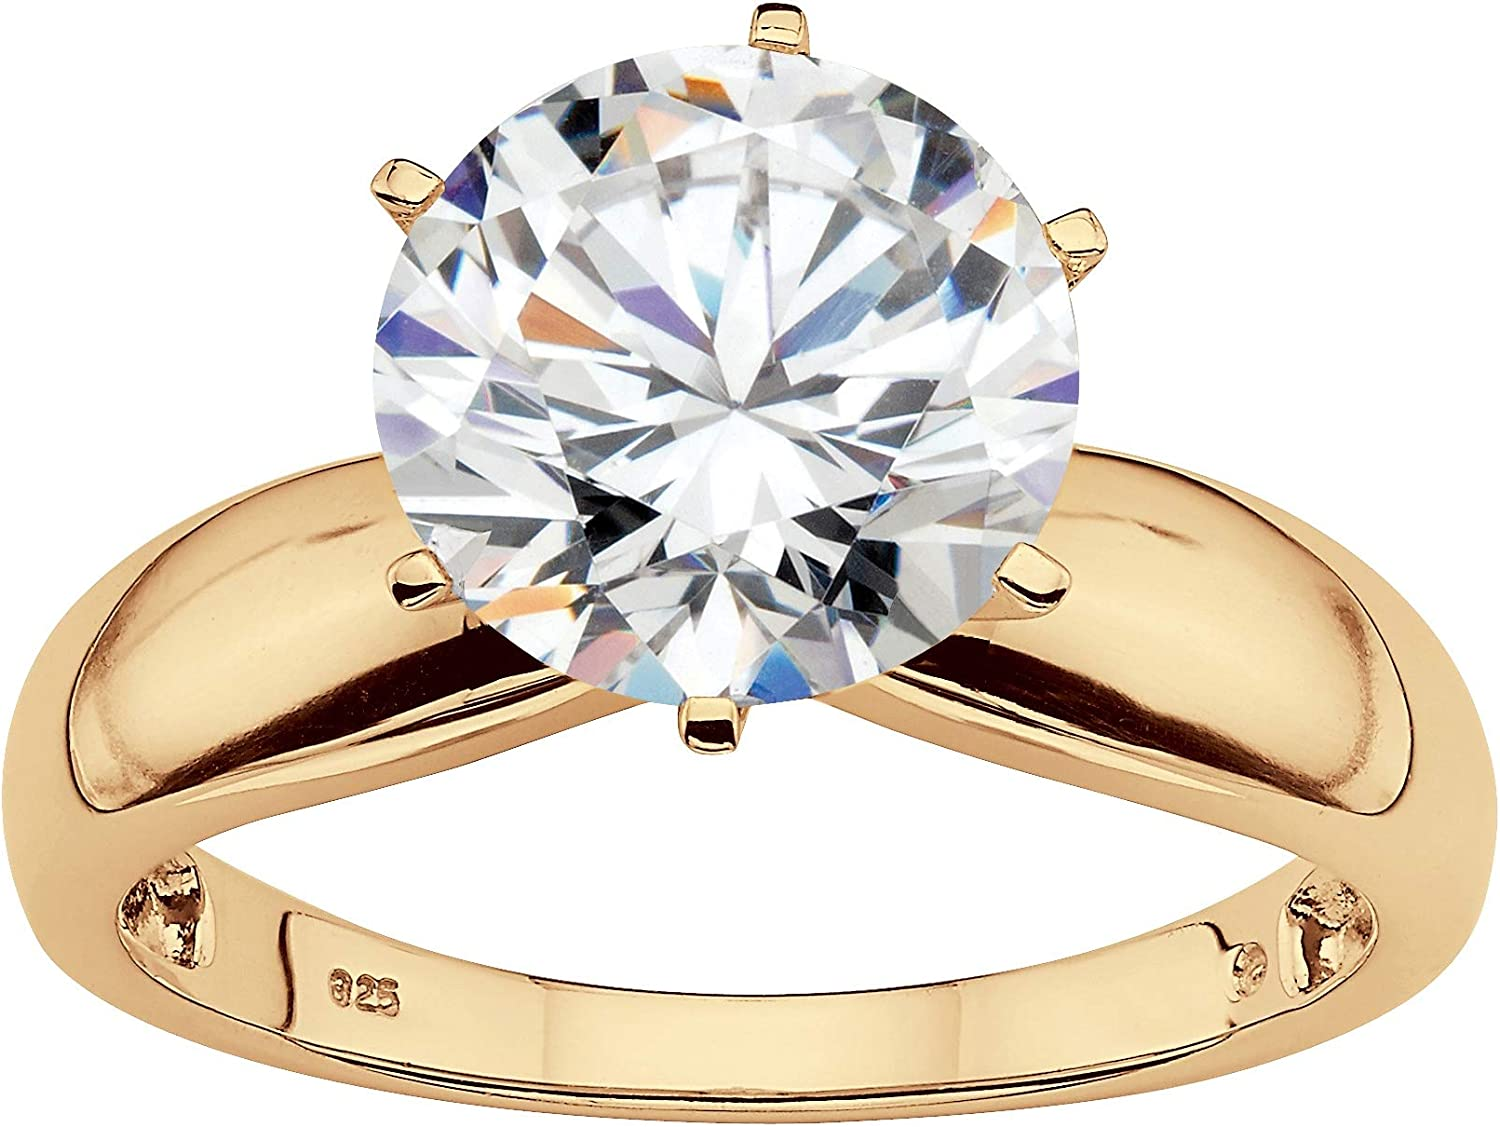 18K Gold-Plated or Platinum-Plated Round Marq Sterling Silver New product!! Gifts